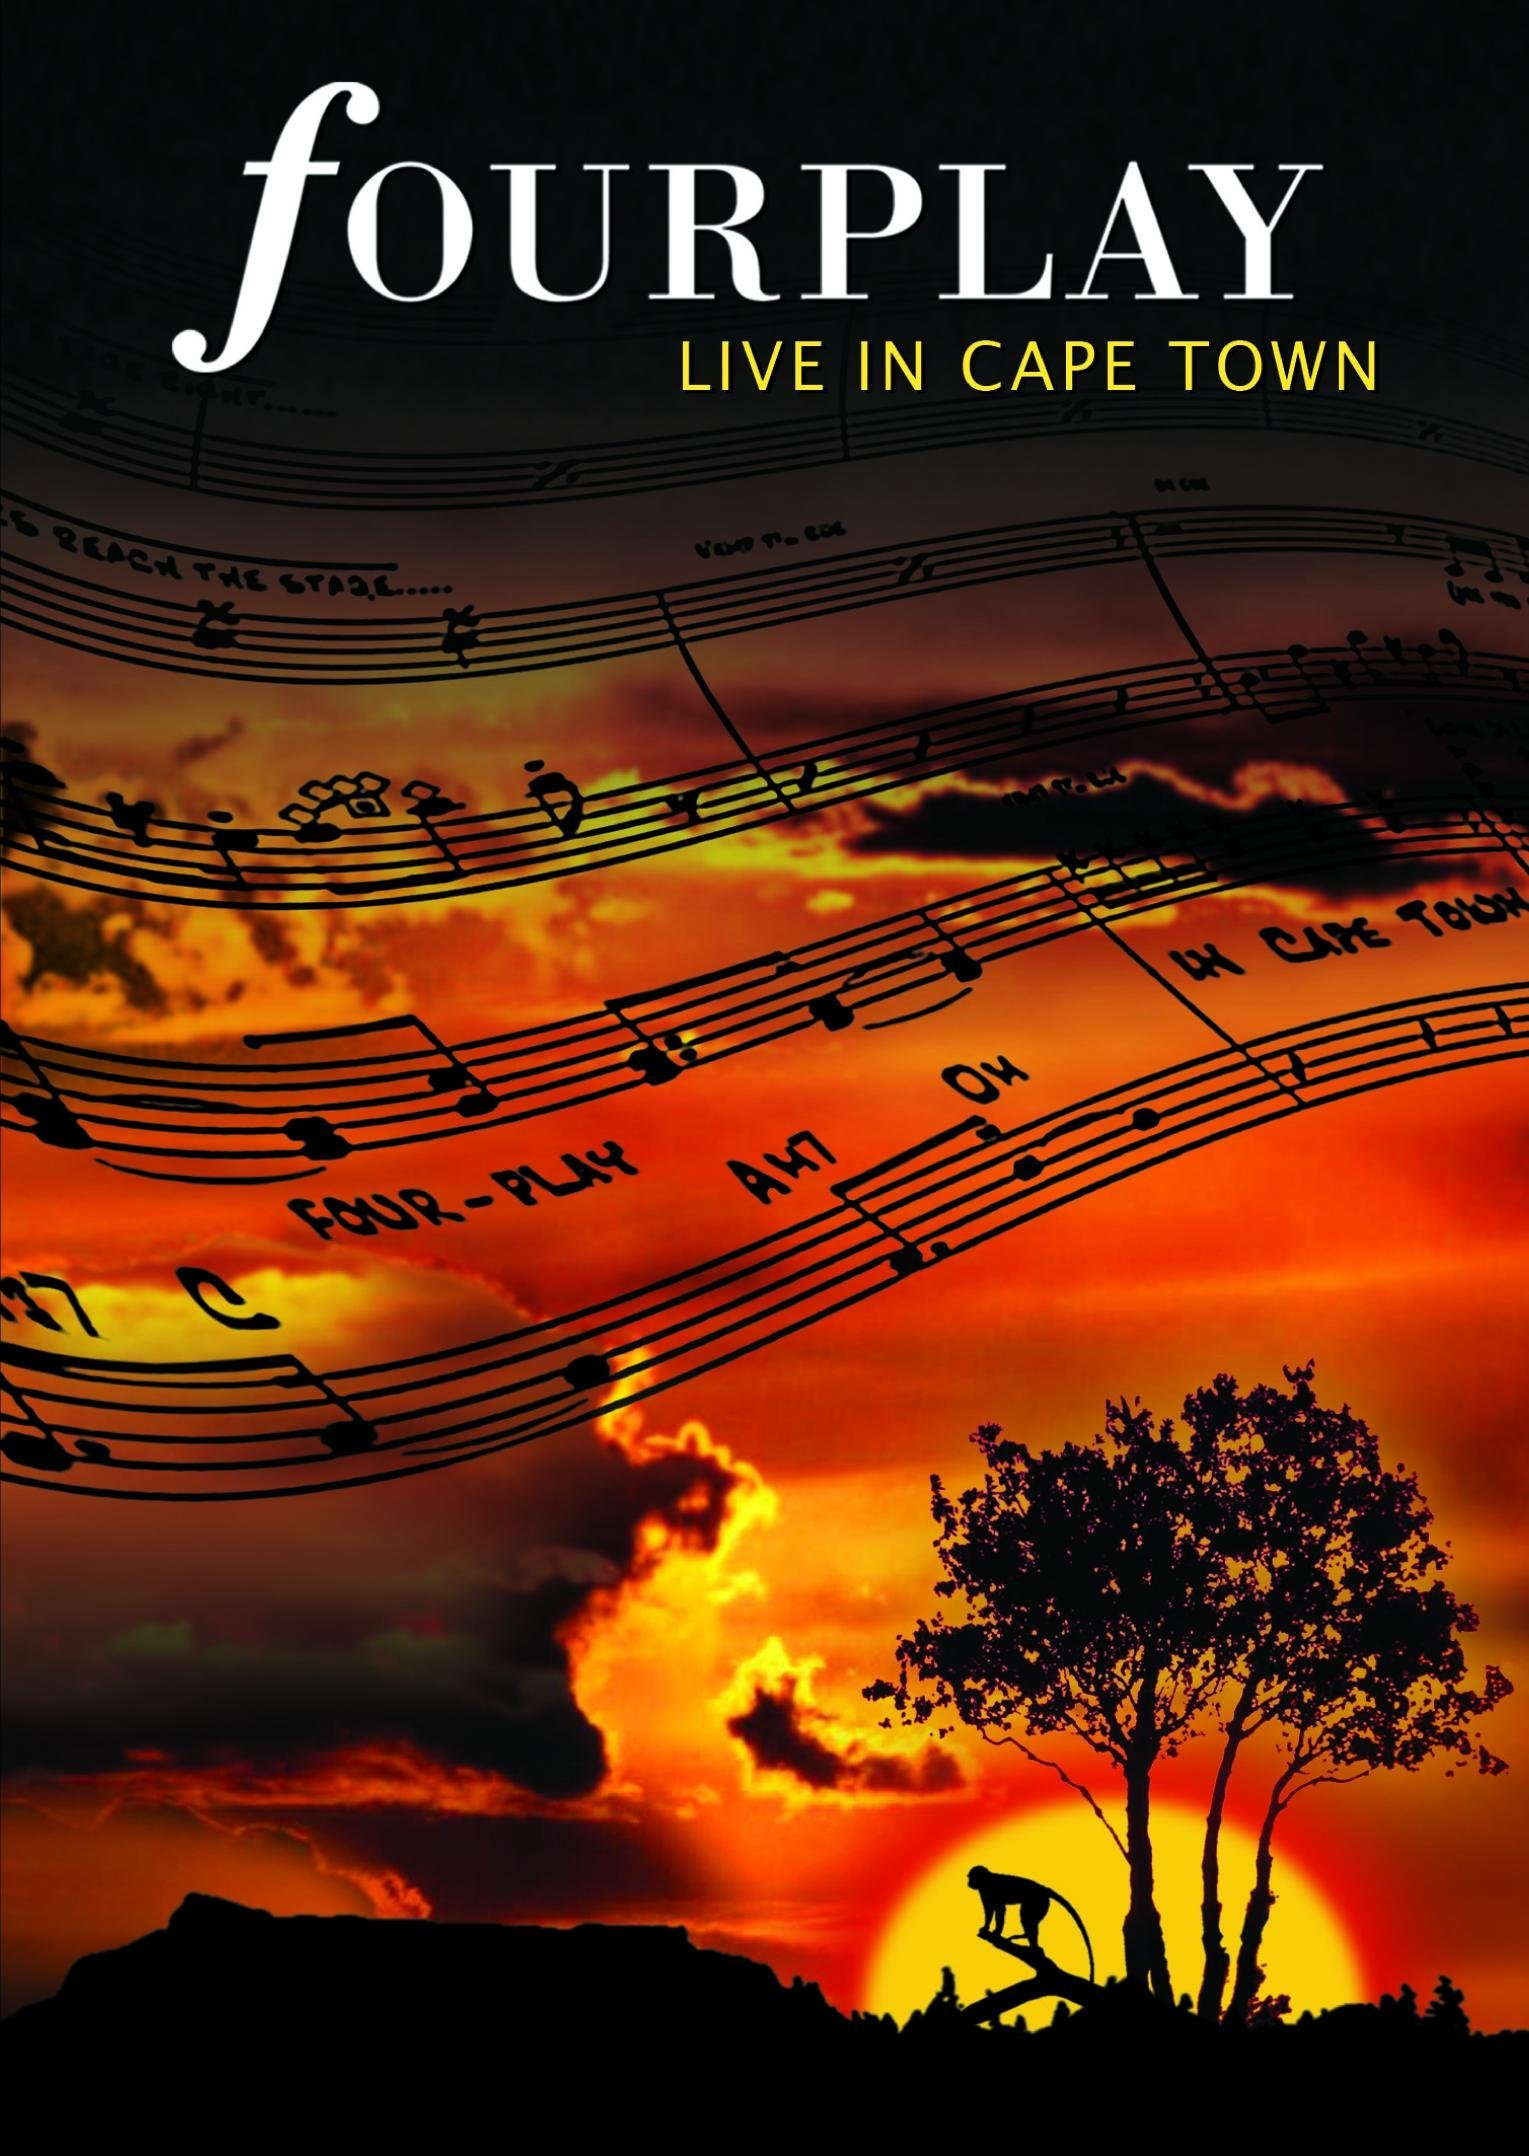 Fourplay: Live in Capetown by Image Entertainment